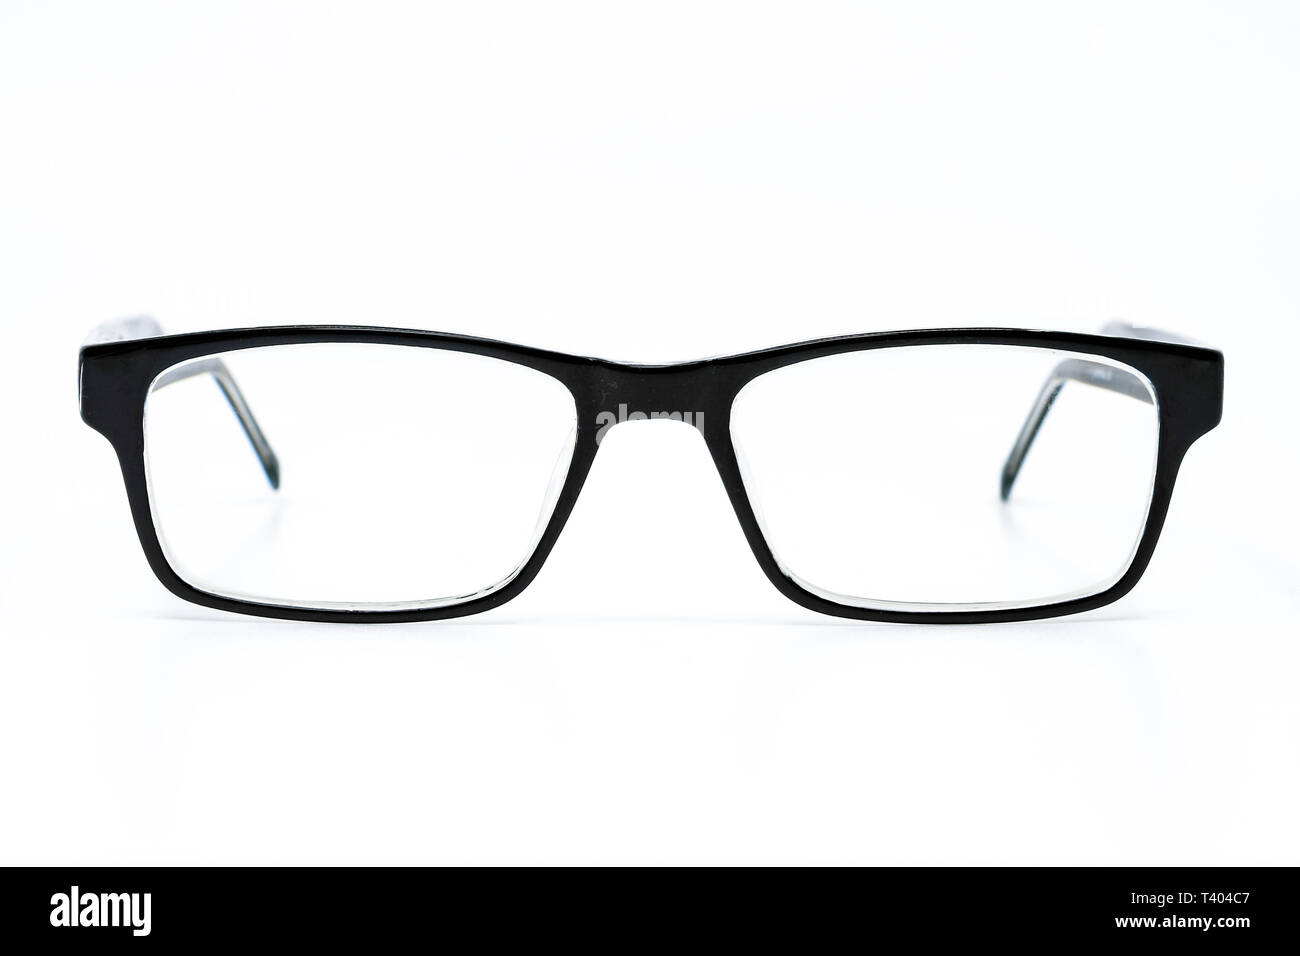 0fbb78e30c21 Pair of black glasses with lenses isolated against a plain white background  - Stock Image